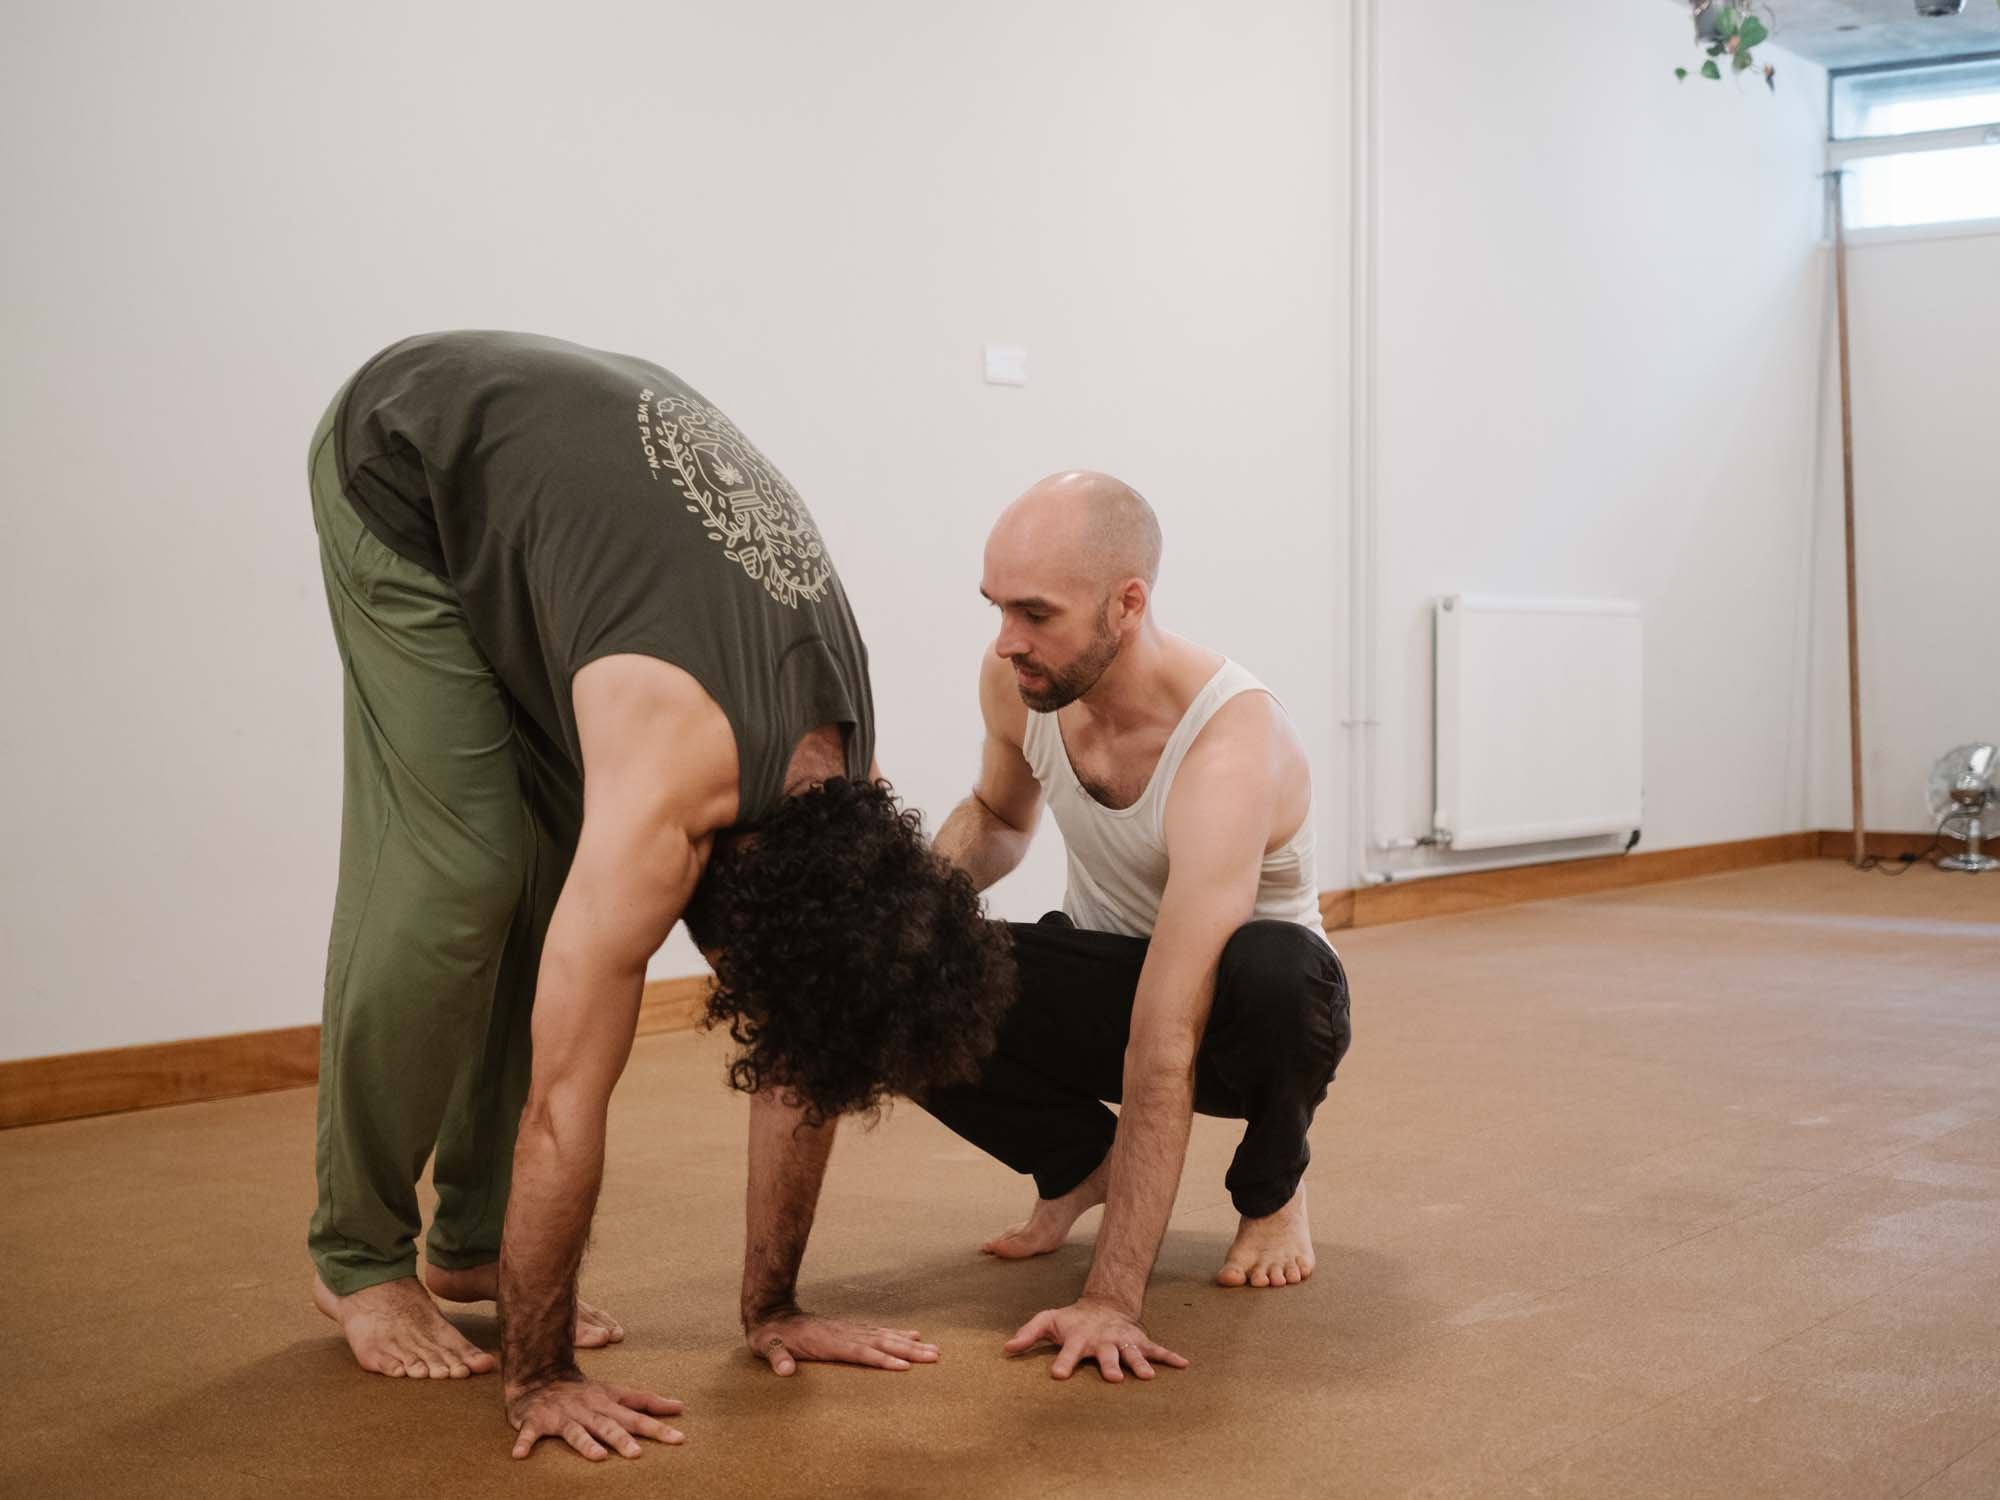 Matt Gill teaching Richard Melkonian how to handstand